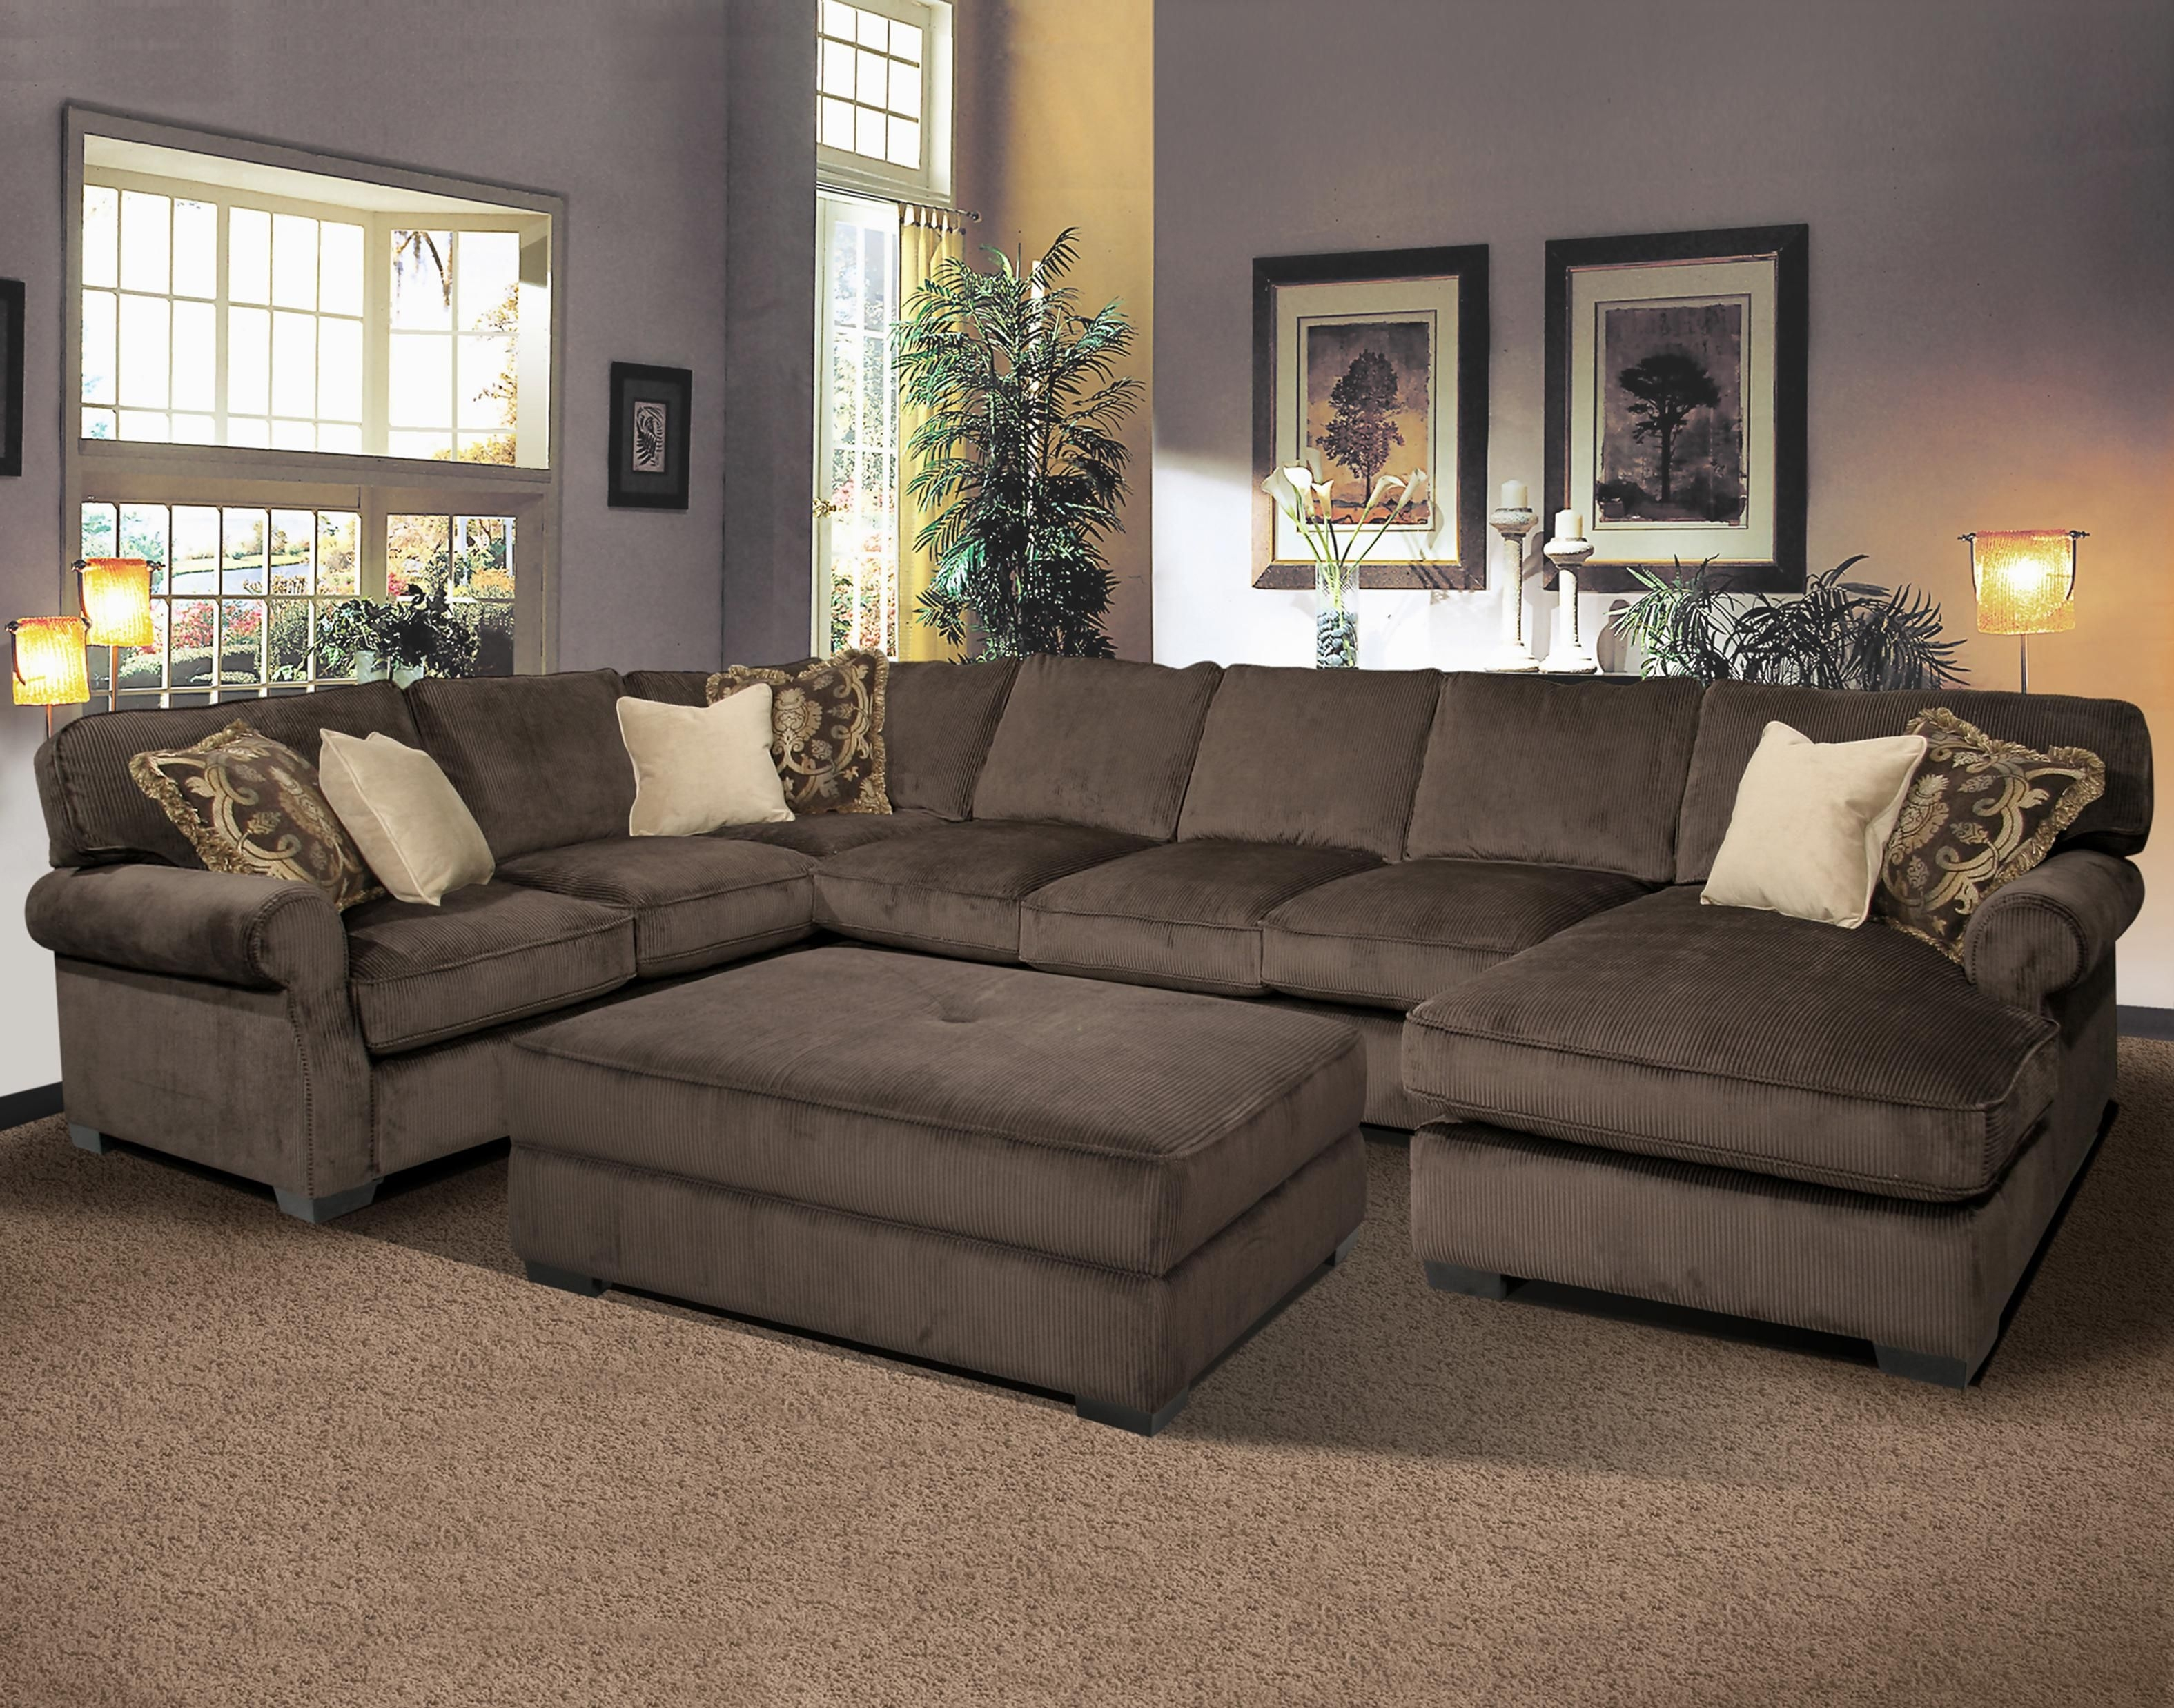 Big And Comfy Grand Island Large, 7 Seat Sectional Sofa With Right Pertaining To Cohen Down 2 Piece Sectionals (View 23 of 25)